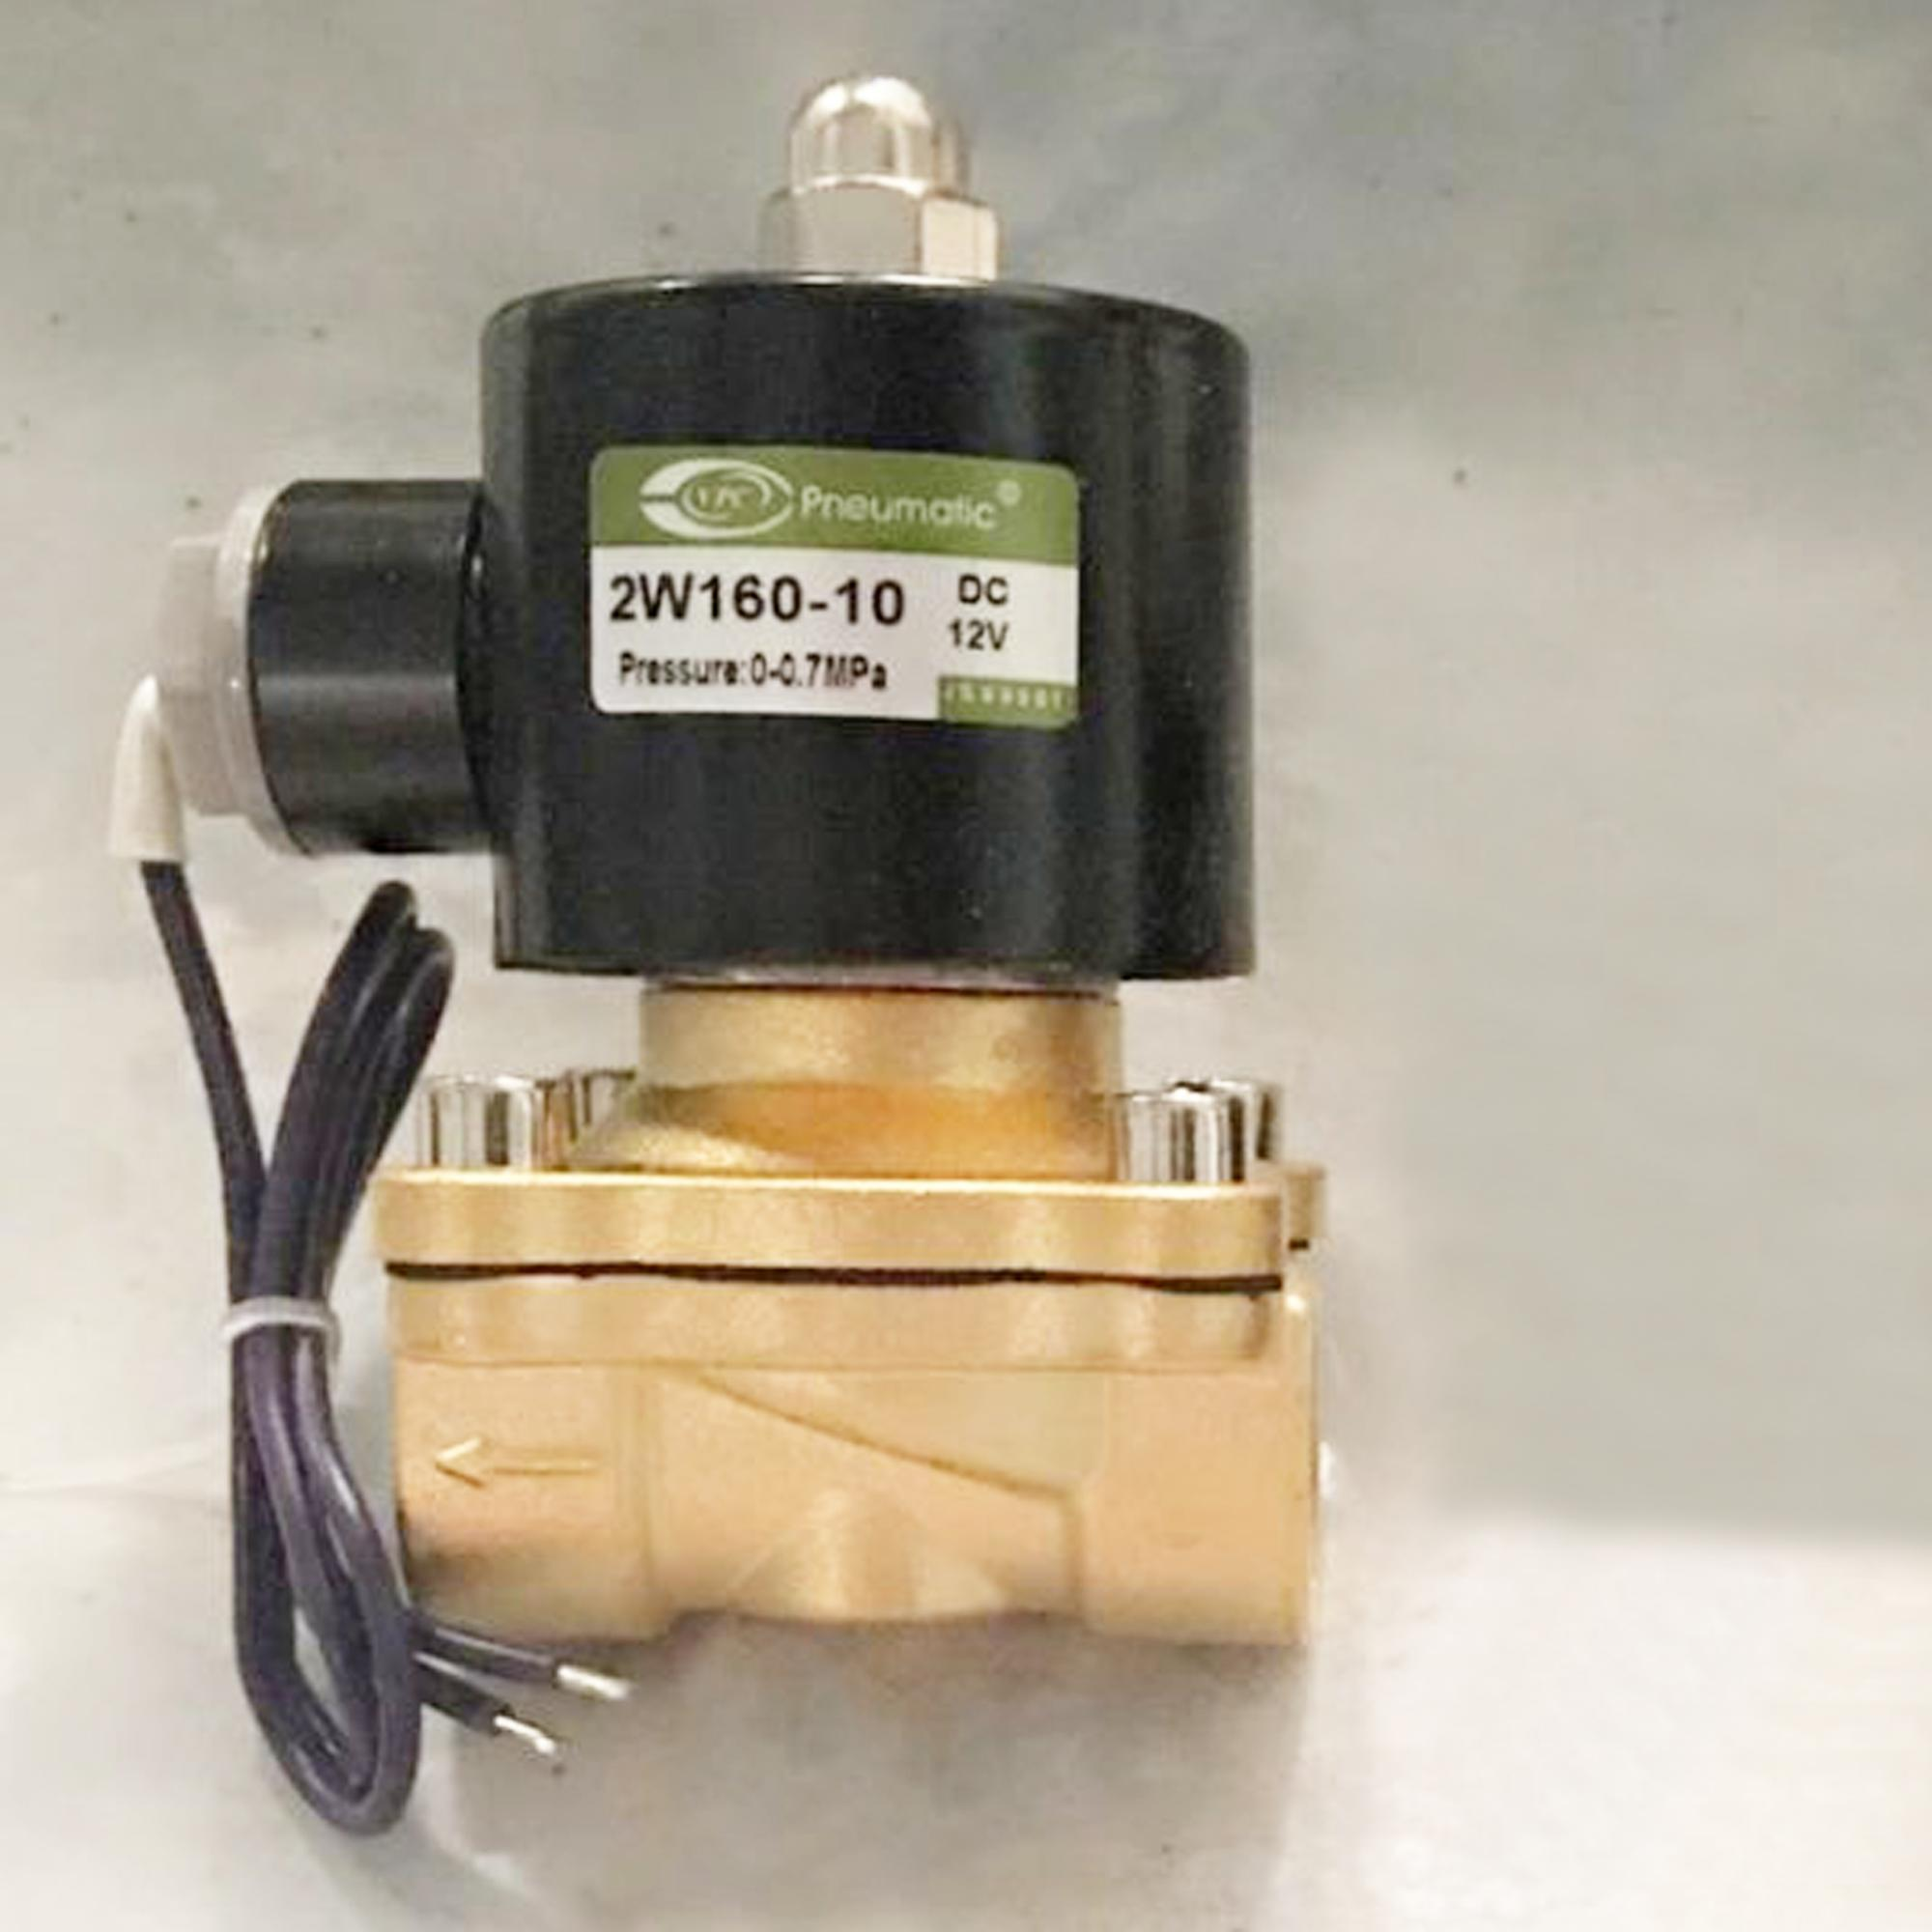 hight resolution of solenoid valve manifold unit with wiring harness for air suspension control